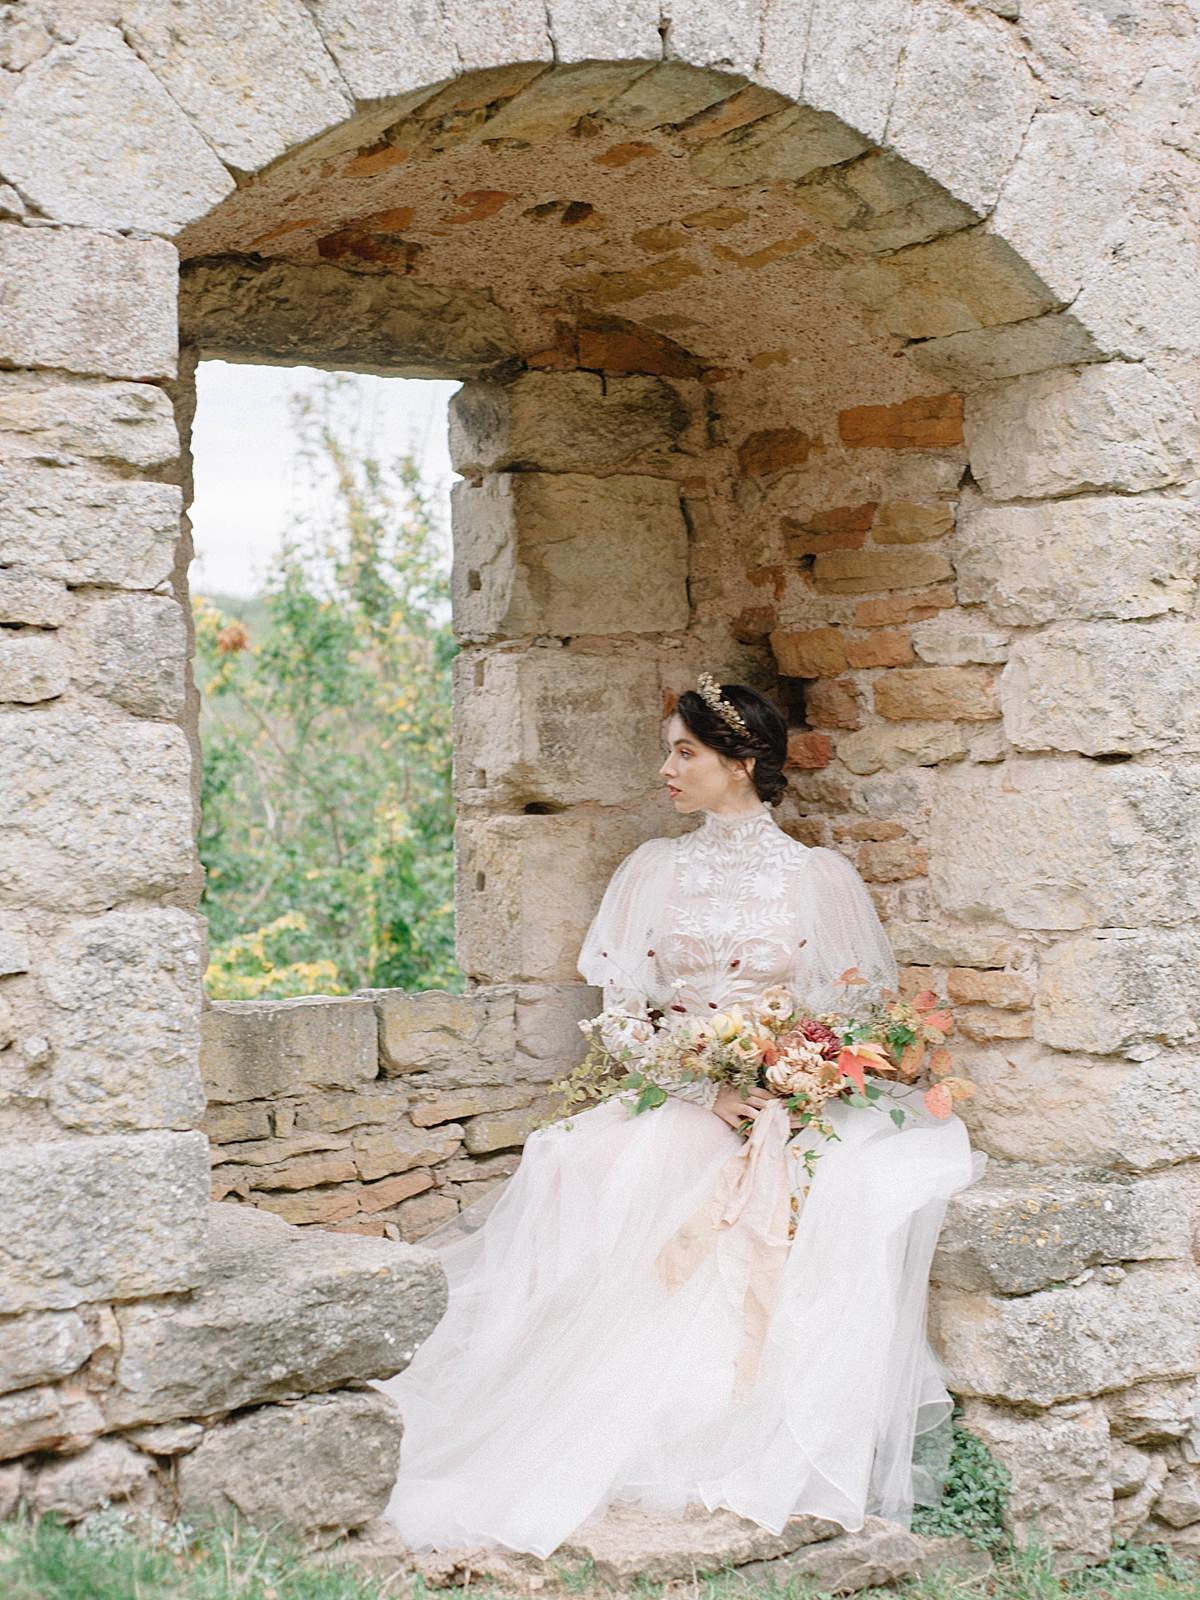 Helianthus-high-neck-puff-sleeve-wedding-dress-JoanneFlemingDesign-CelineChhuonPhoto (87)_WEB